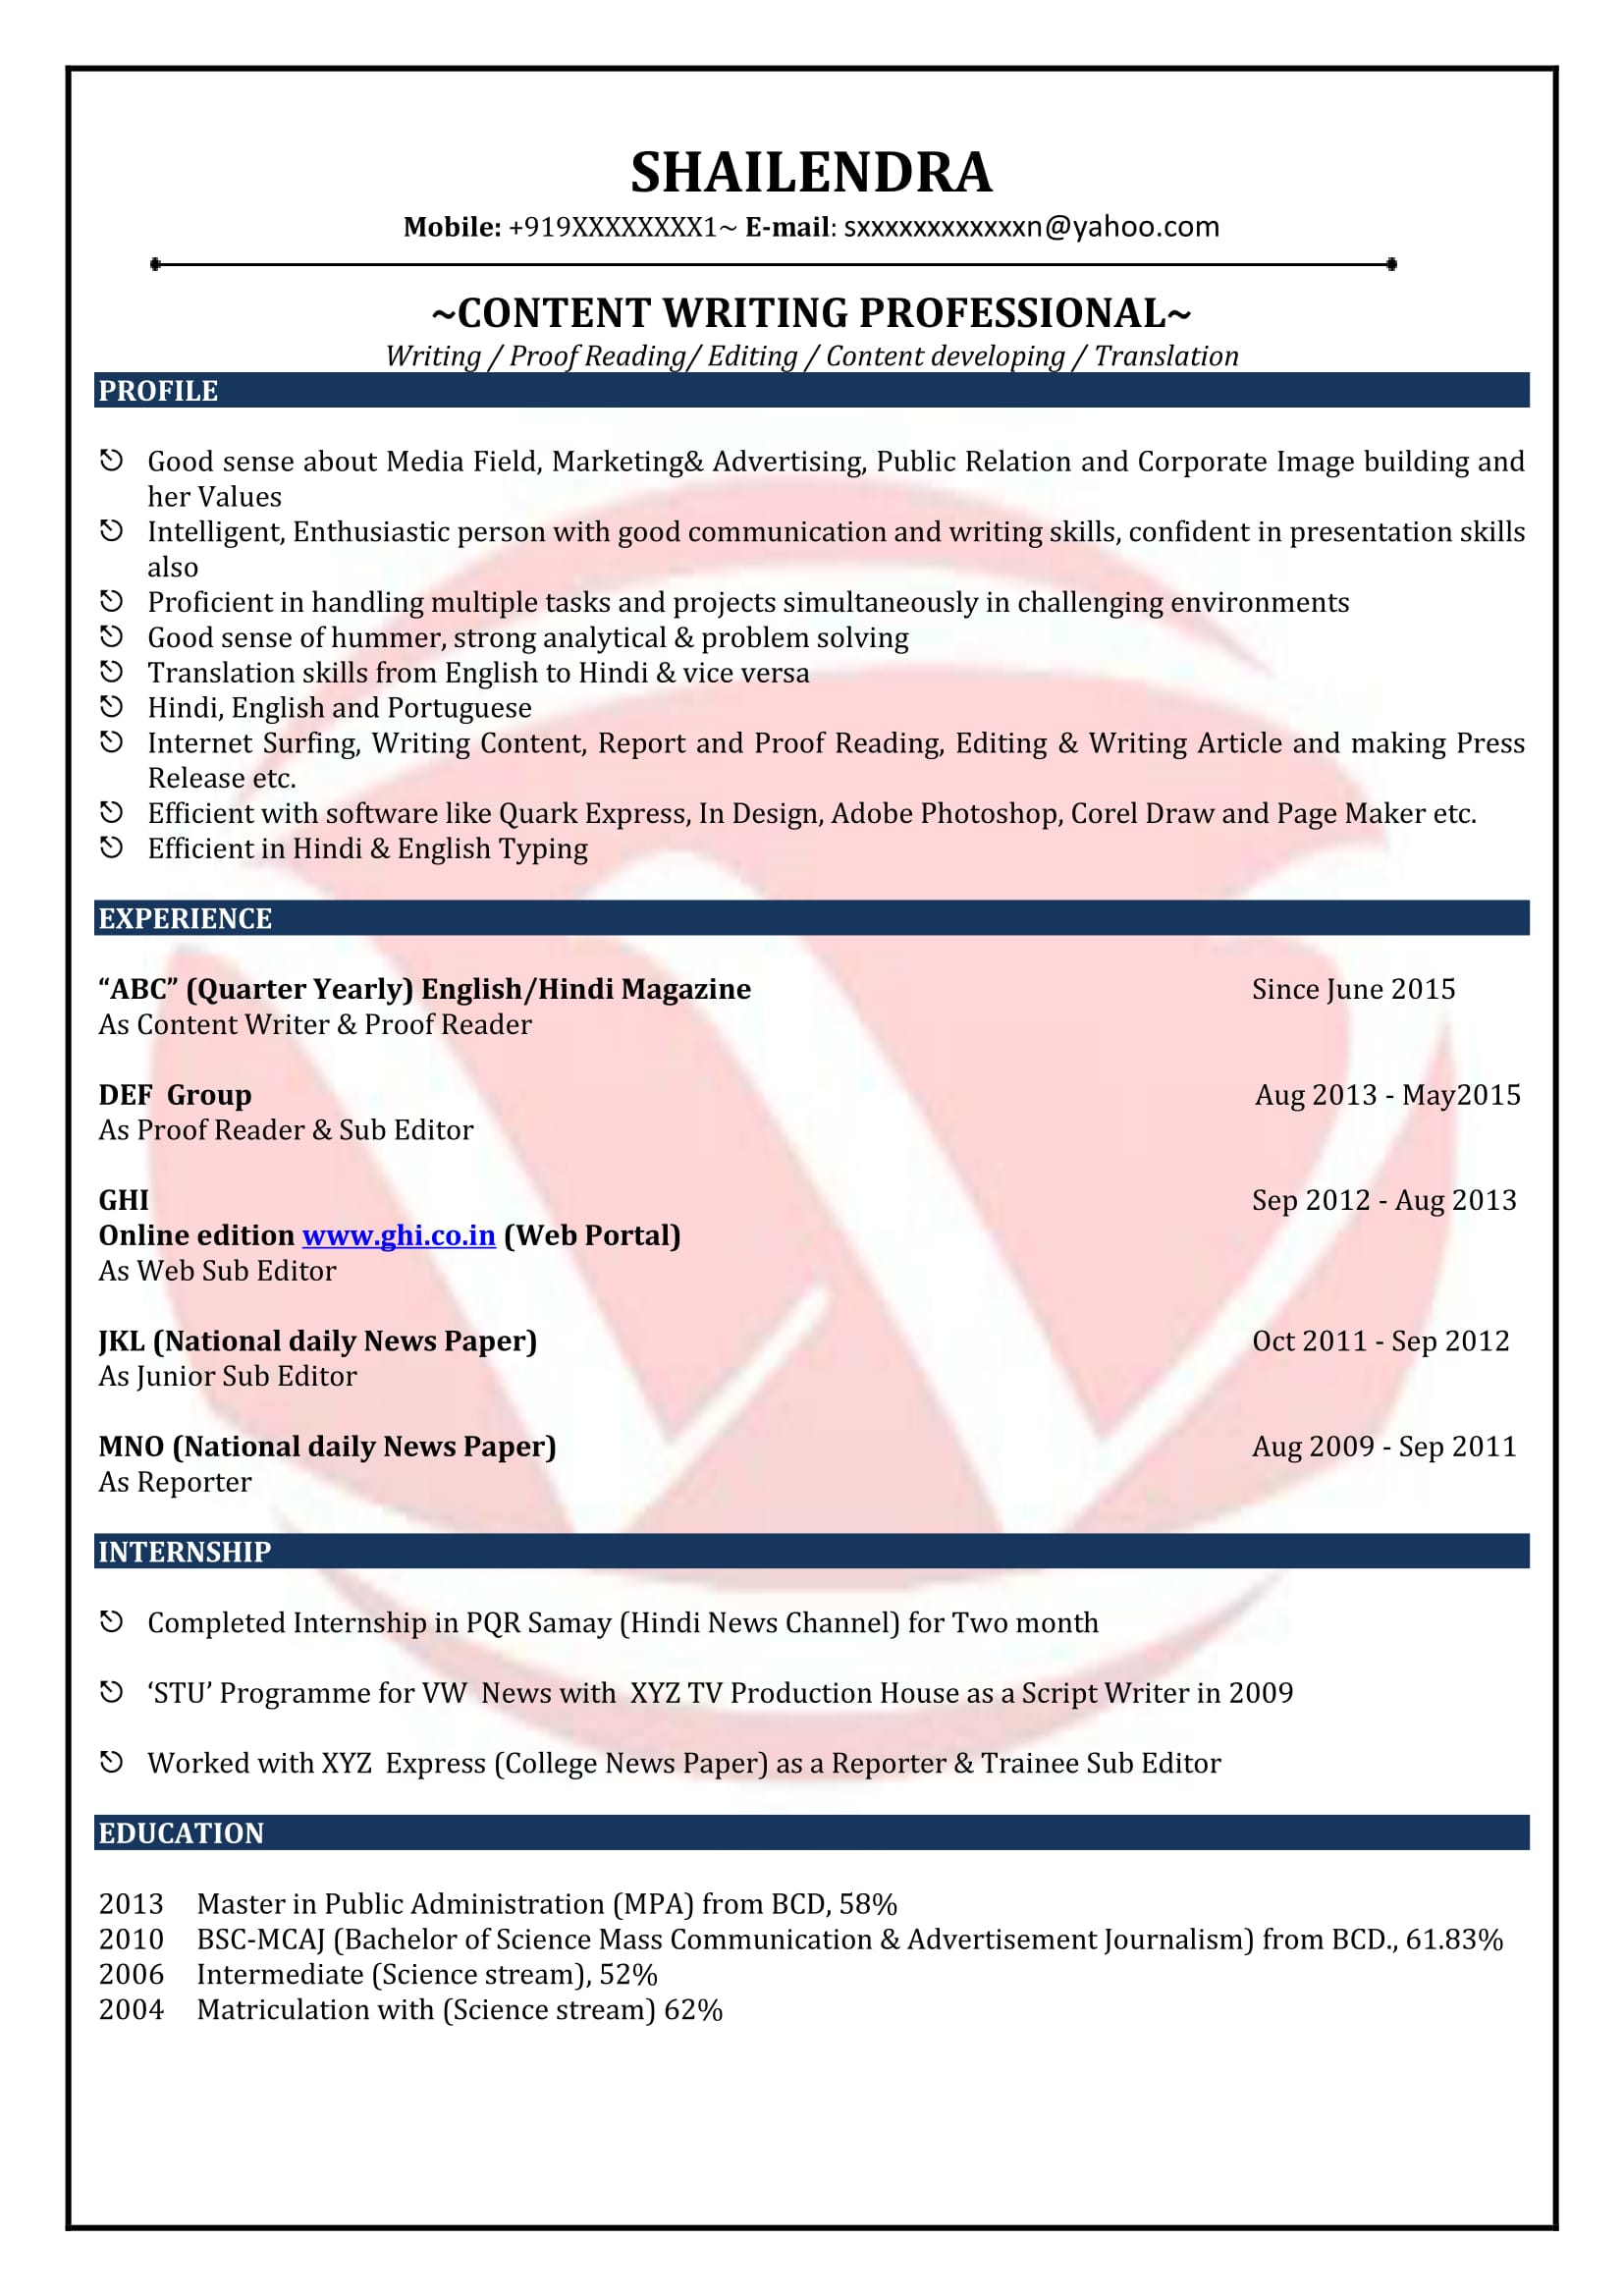 resume format for news editor